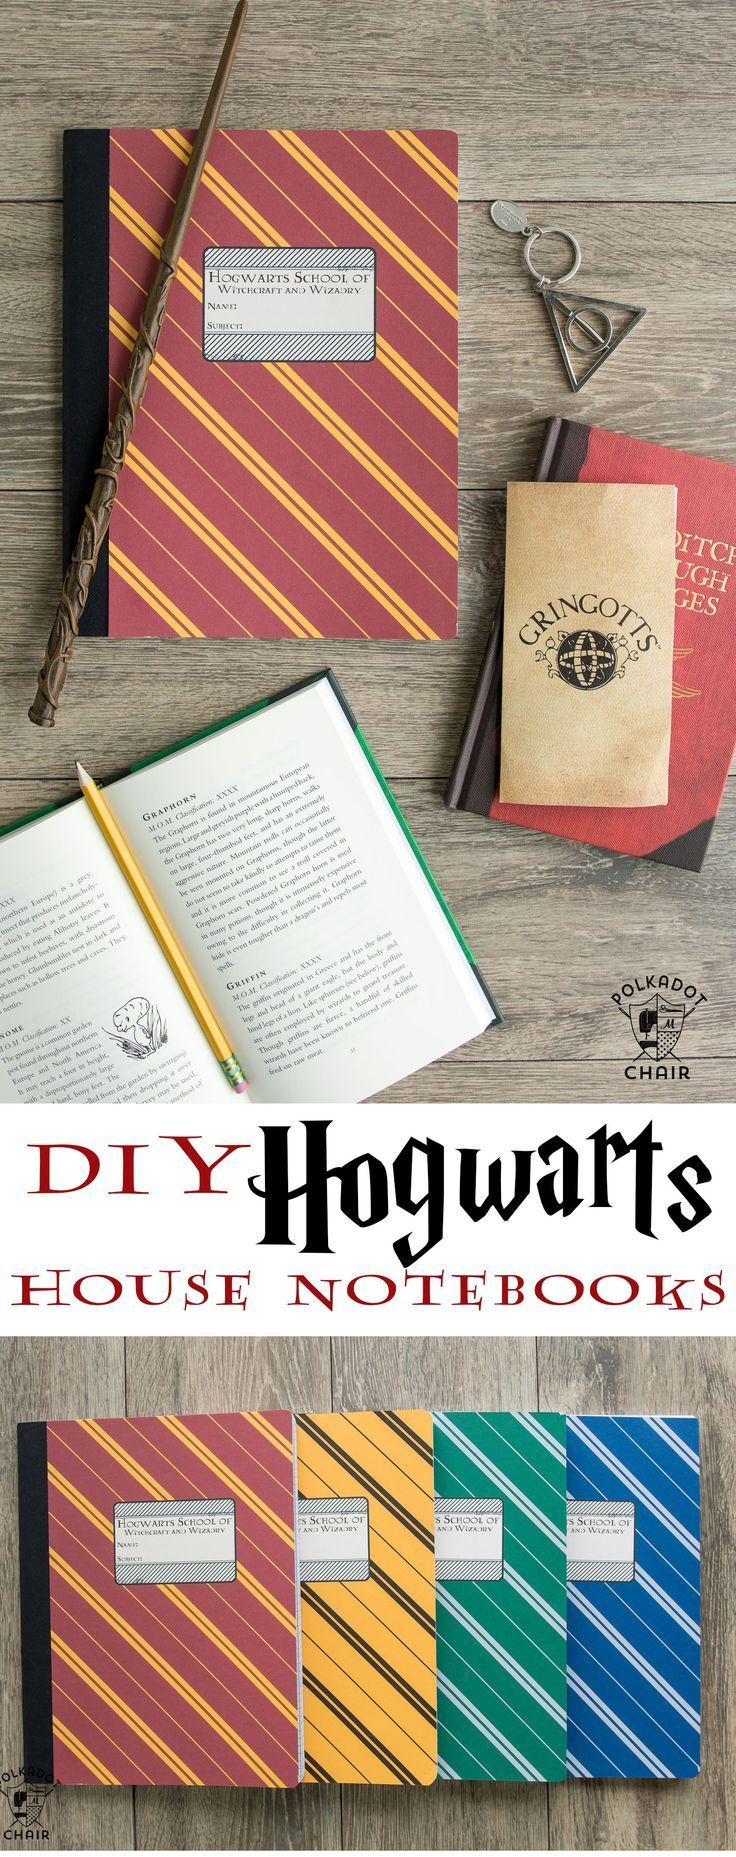 DIY Harry Potter Hogwarts Notebooks; with free printable covers for each house o...